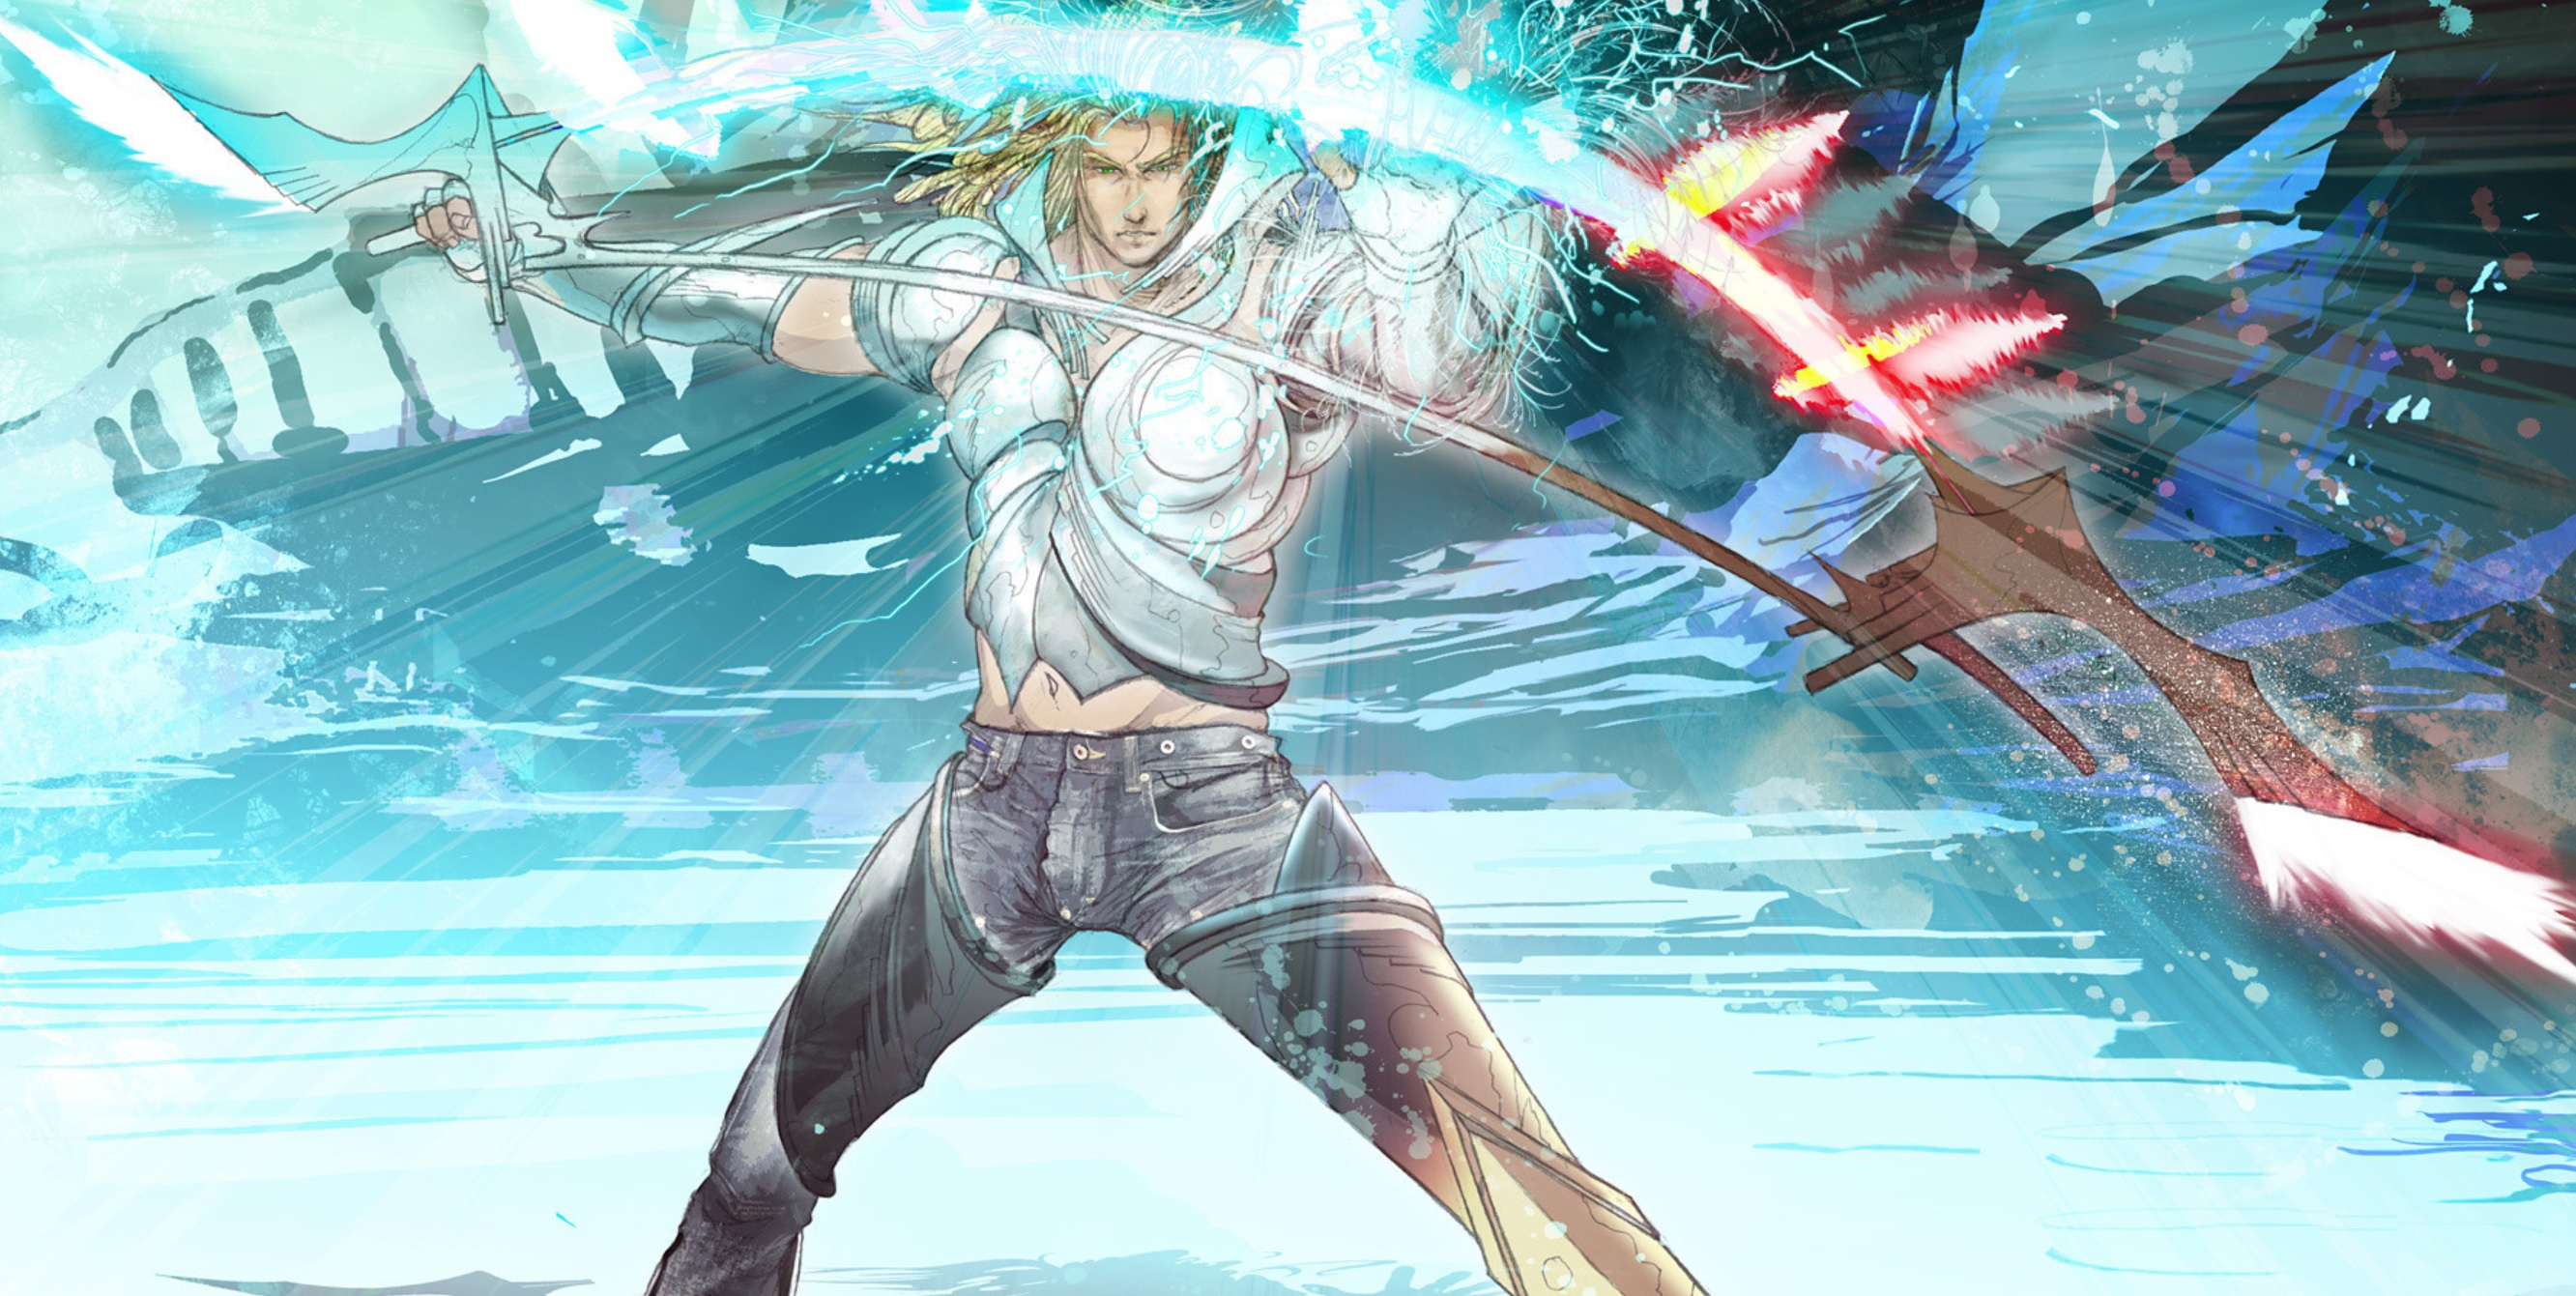 El Shaddai: Ascension of the Metatron director isn't bringing back the bizarre jean promotion, but he is considering a vinyl release screenshot